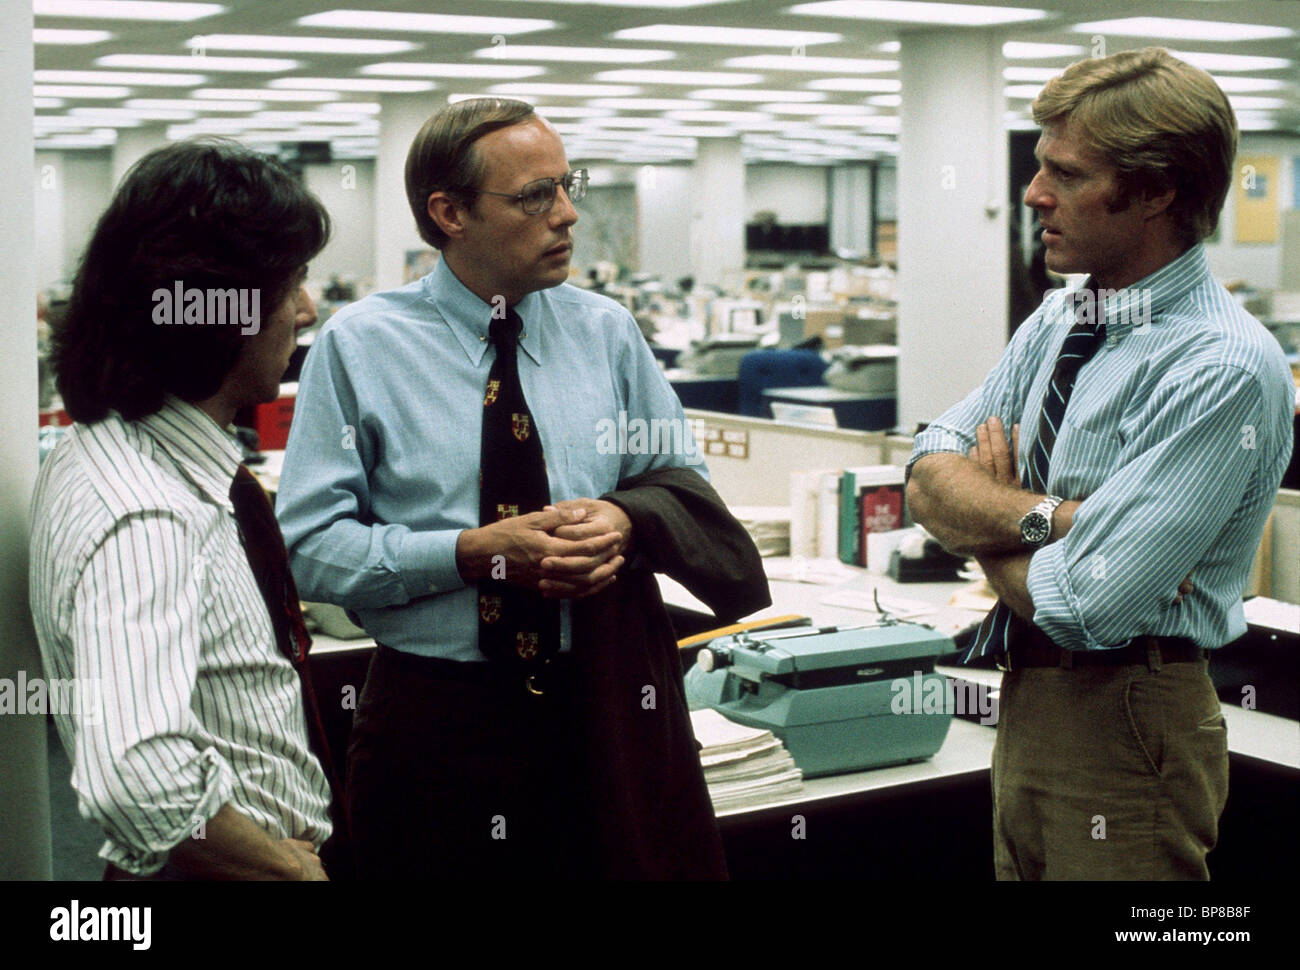 all the presidents men All the president's men is a 1976 american political thriller film about the watergate scandal, which brought down the presidency of richard m nixon.